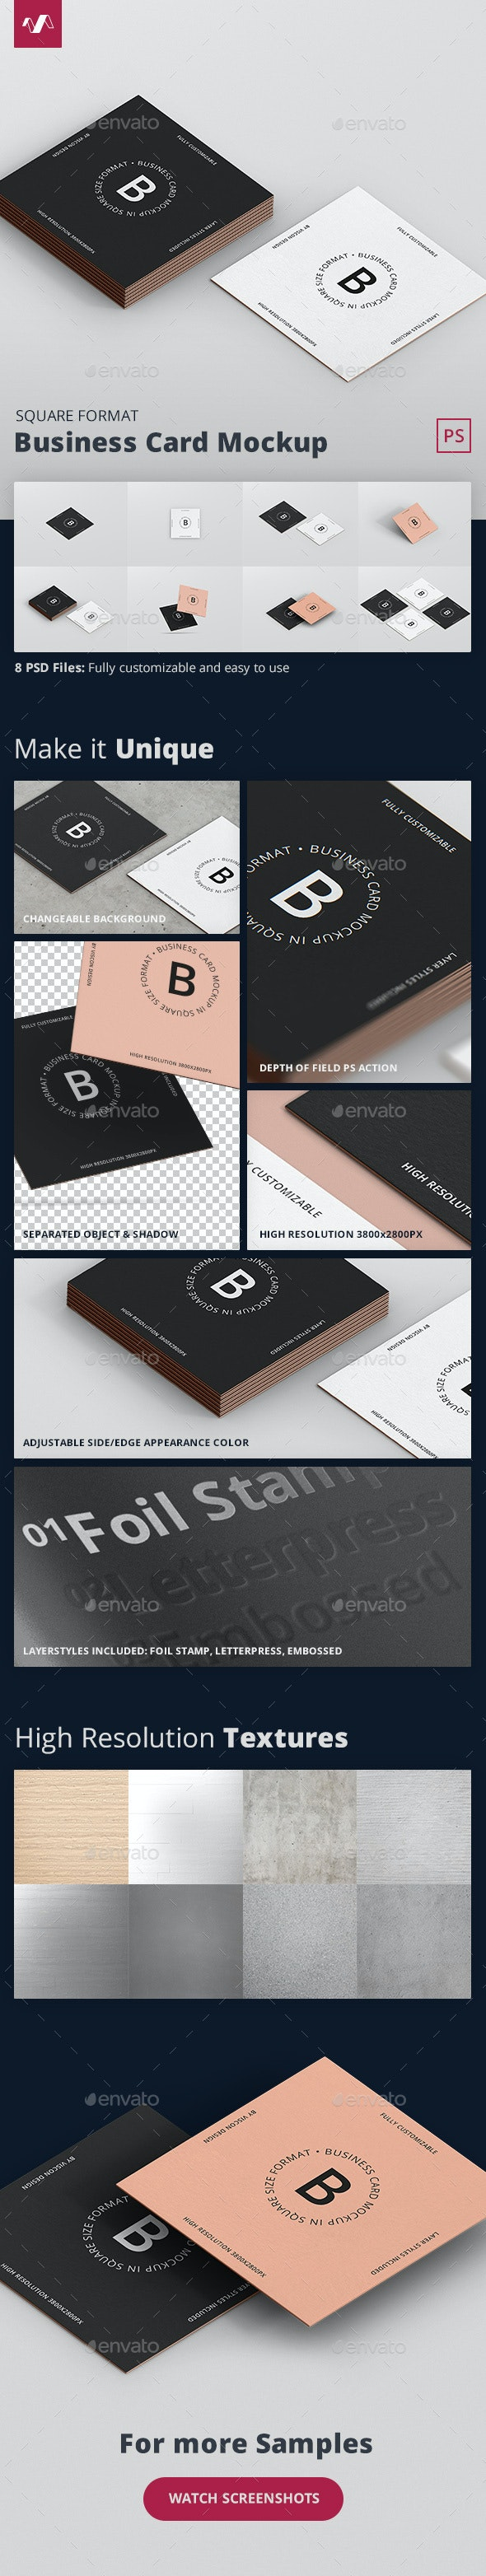 Business Card Mockup Square Format - Business Cards Print